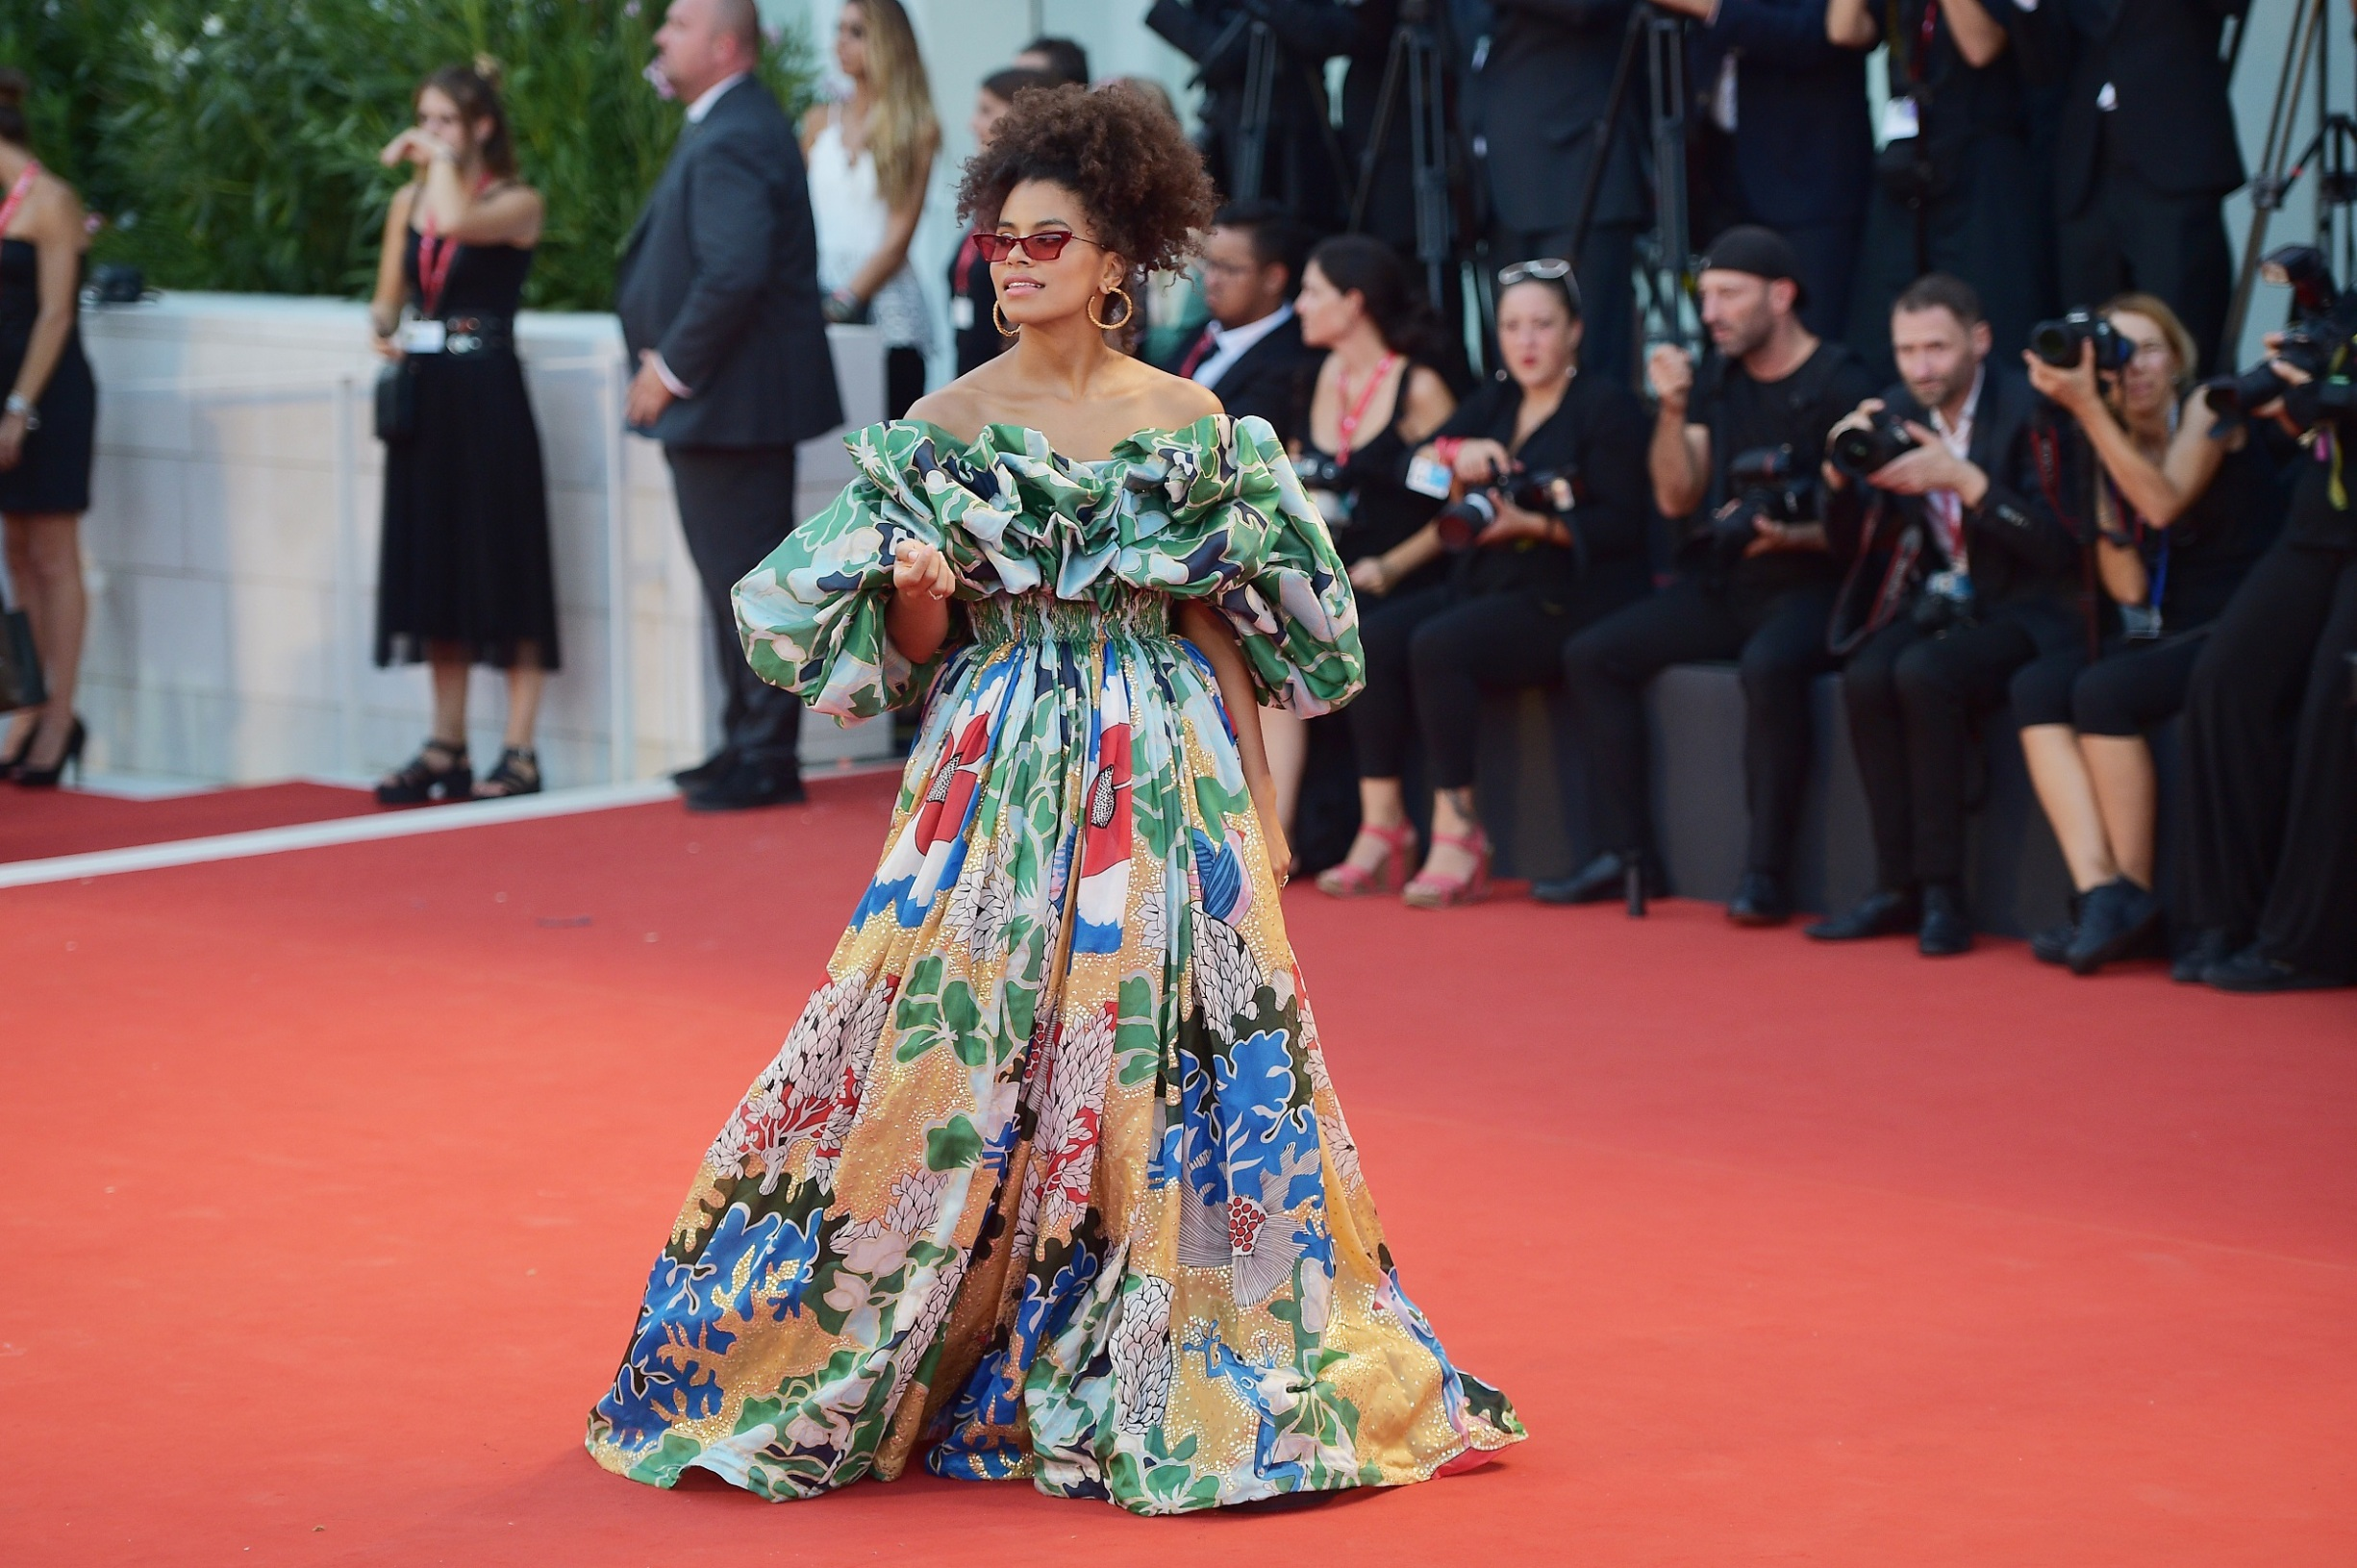 VENICE, ITALY - AUGUST 31: Zazie Beetz walks the red carpet ahead of the